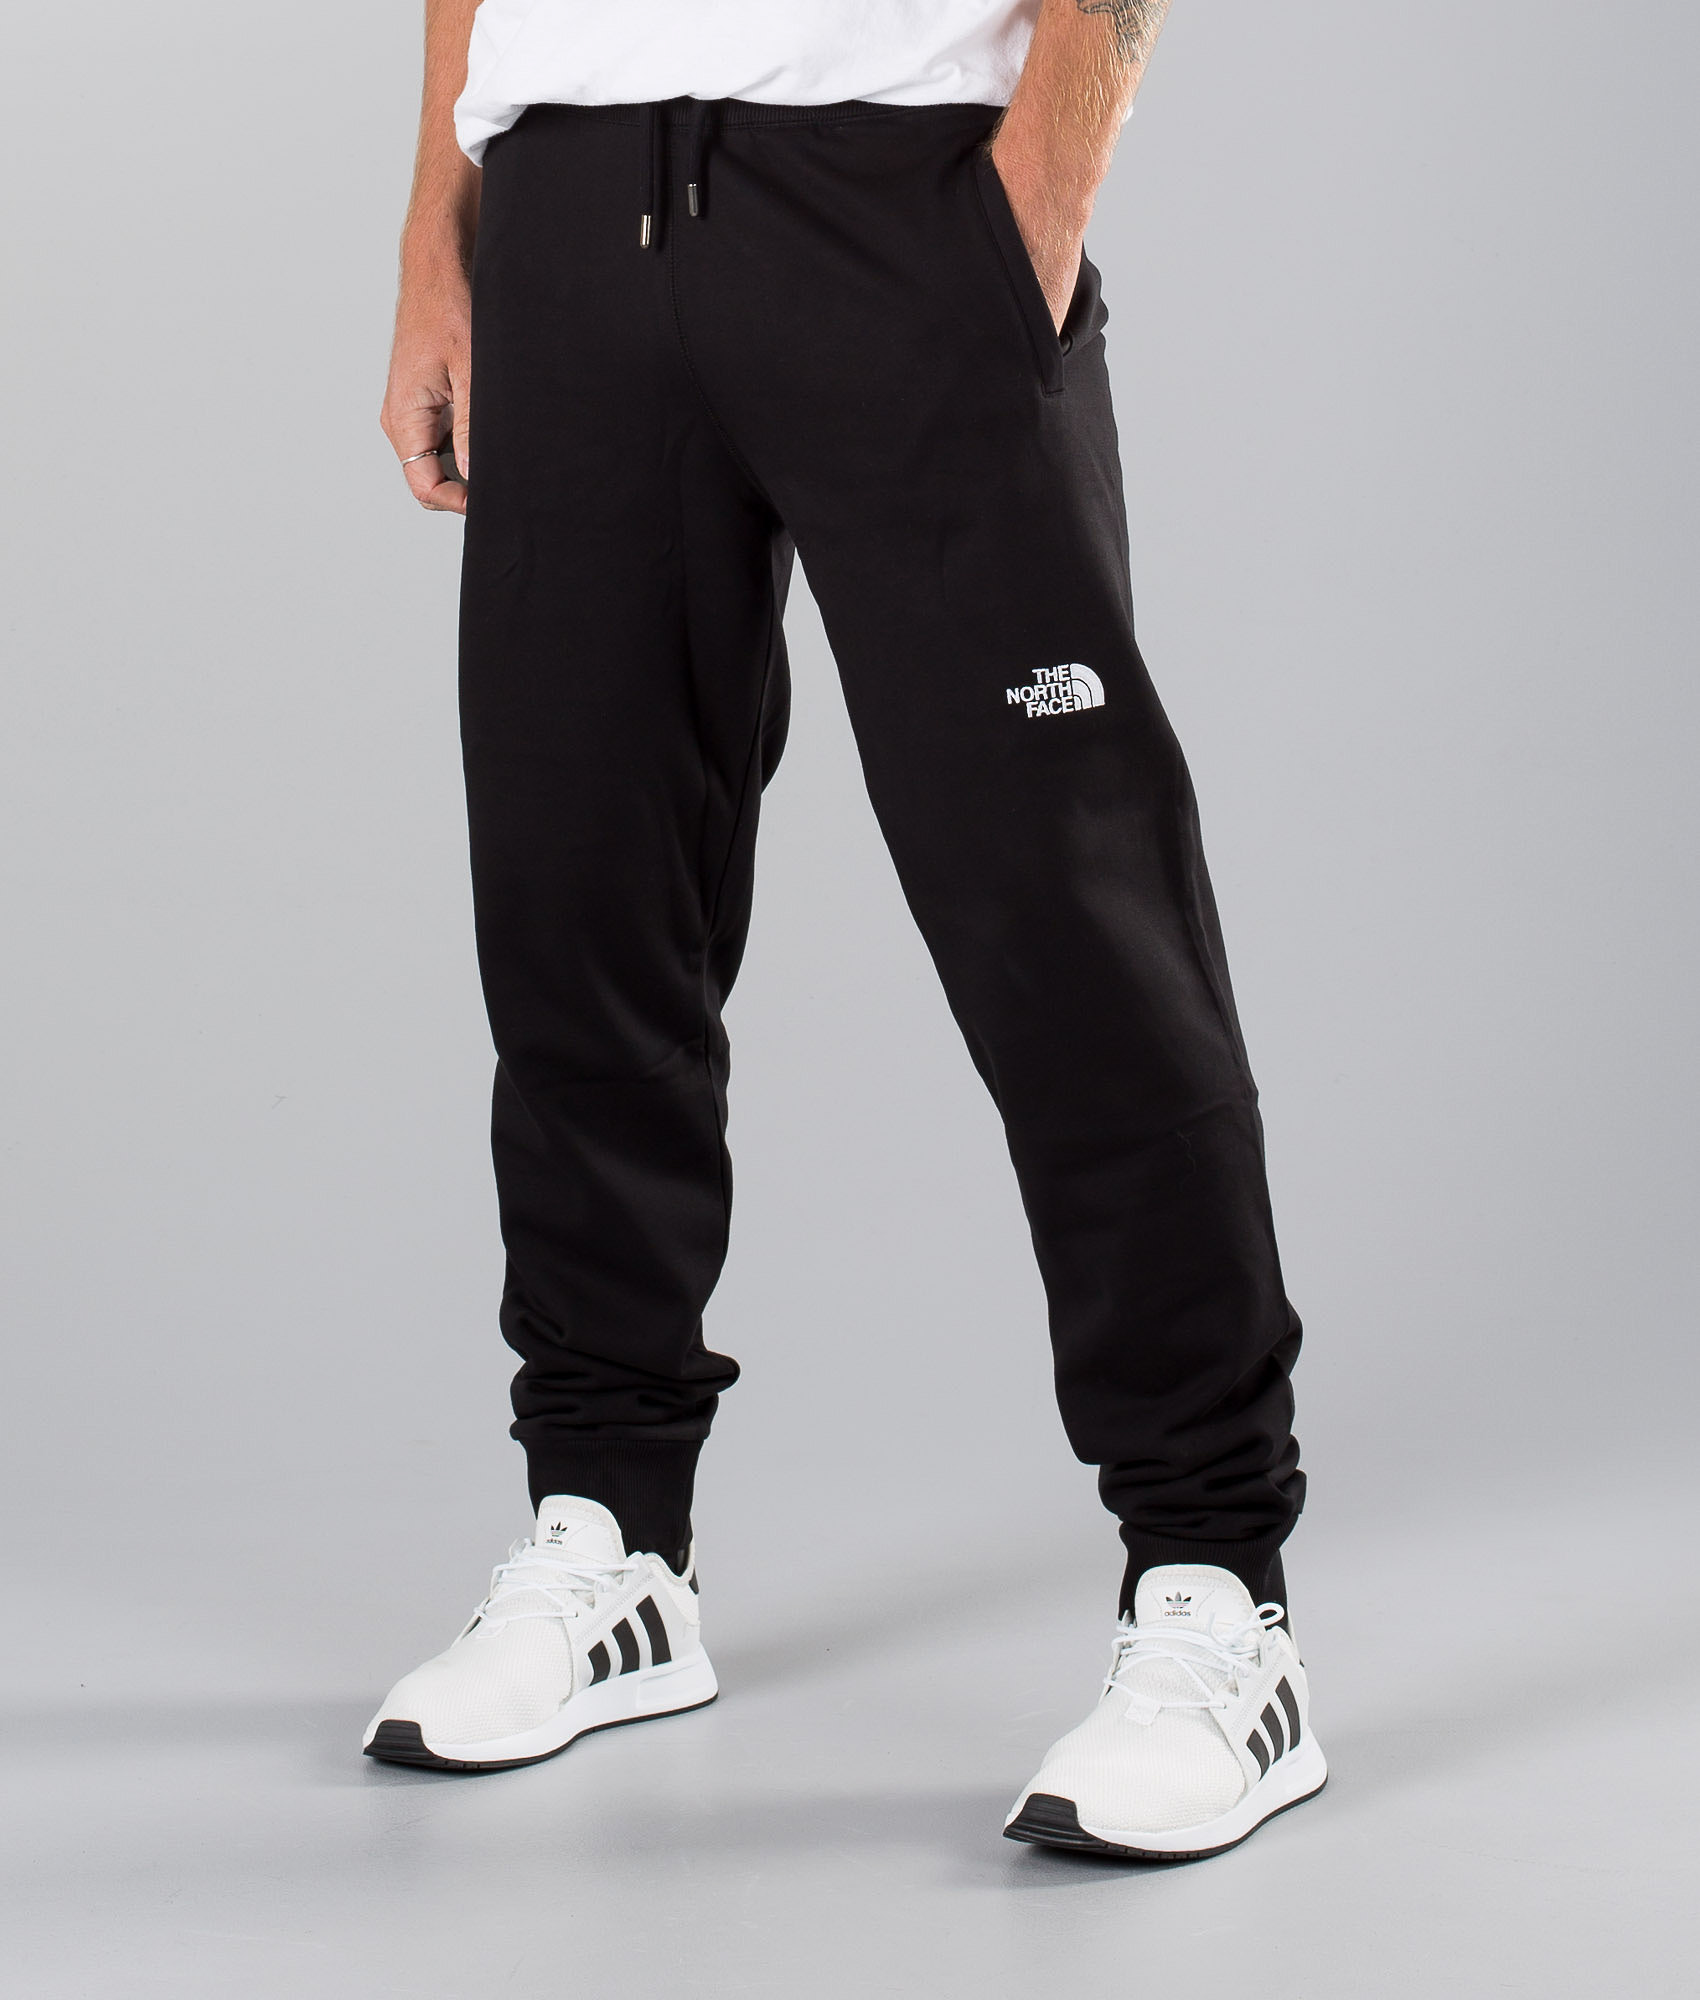 low cost 01362 1b4da The North Face NSE Pants